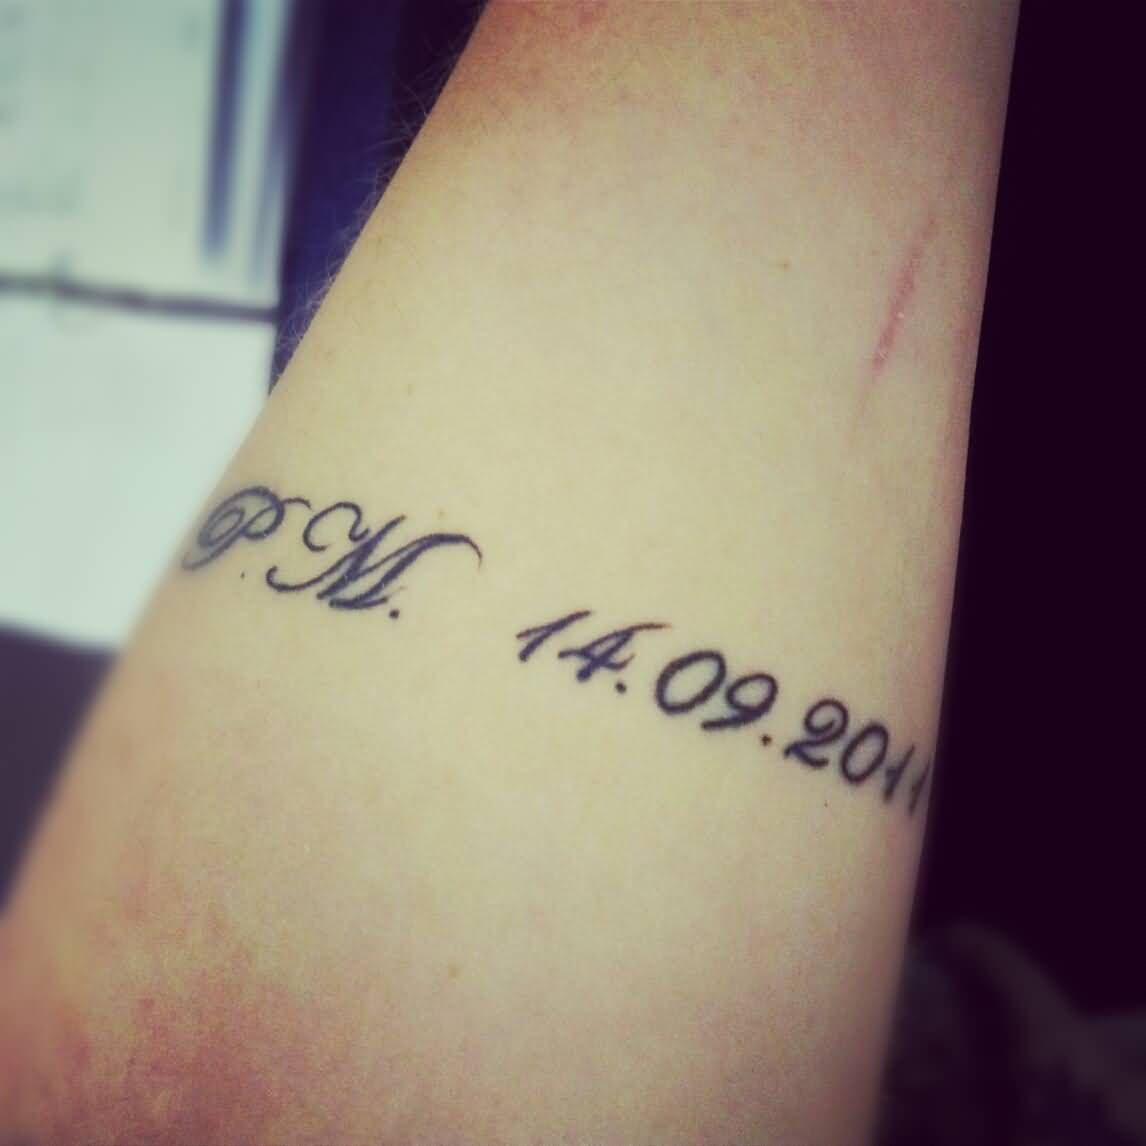 Lovely Wedding Date Tattoo On Sleeve With Initials | Tattoos With ...